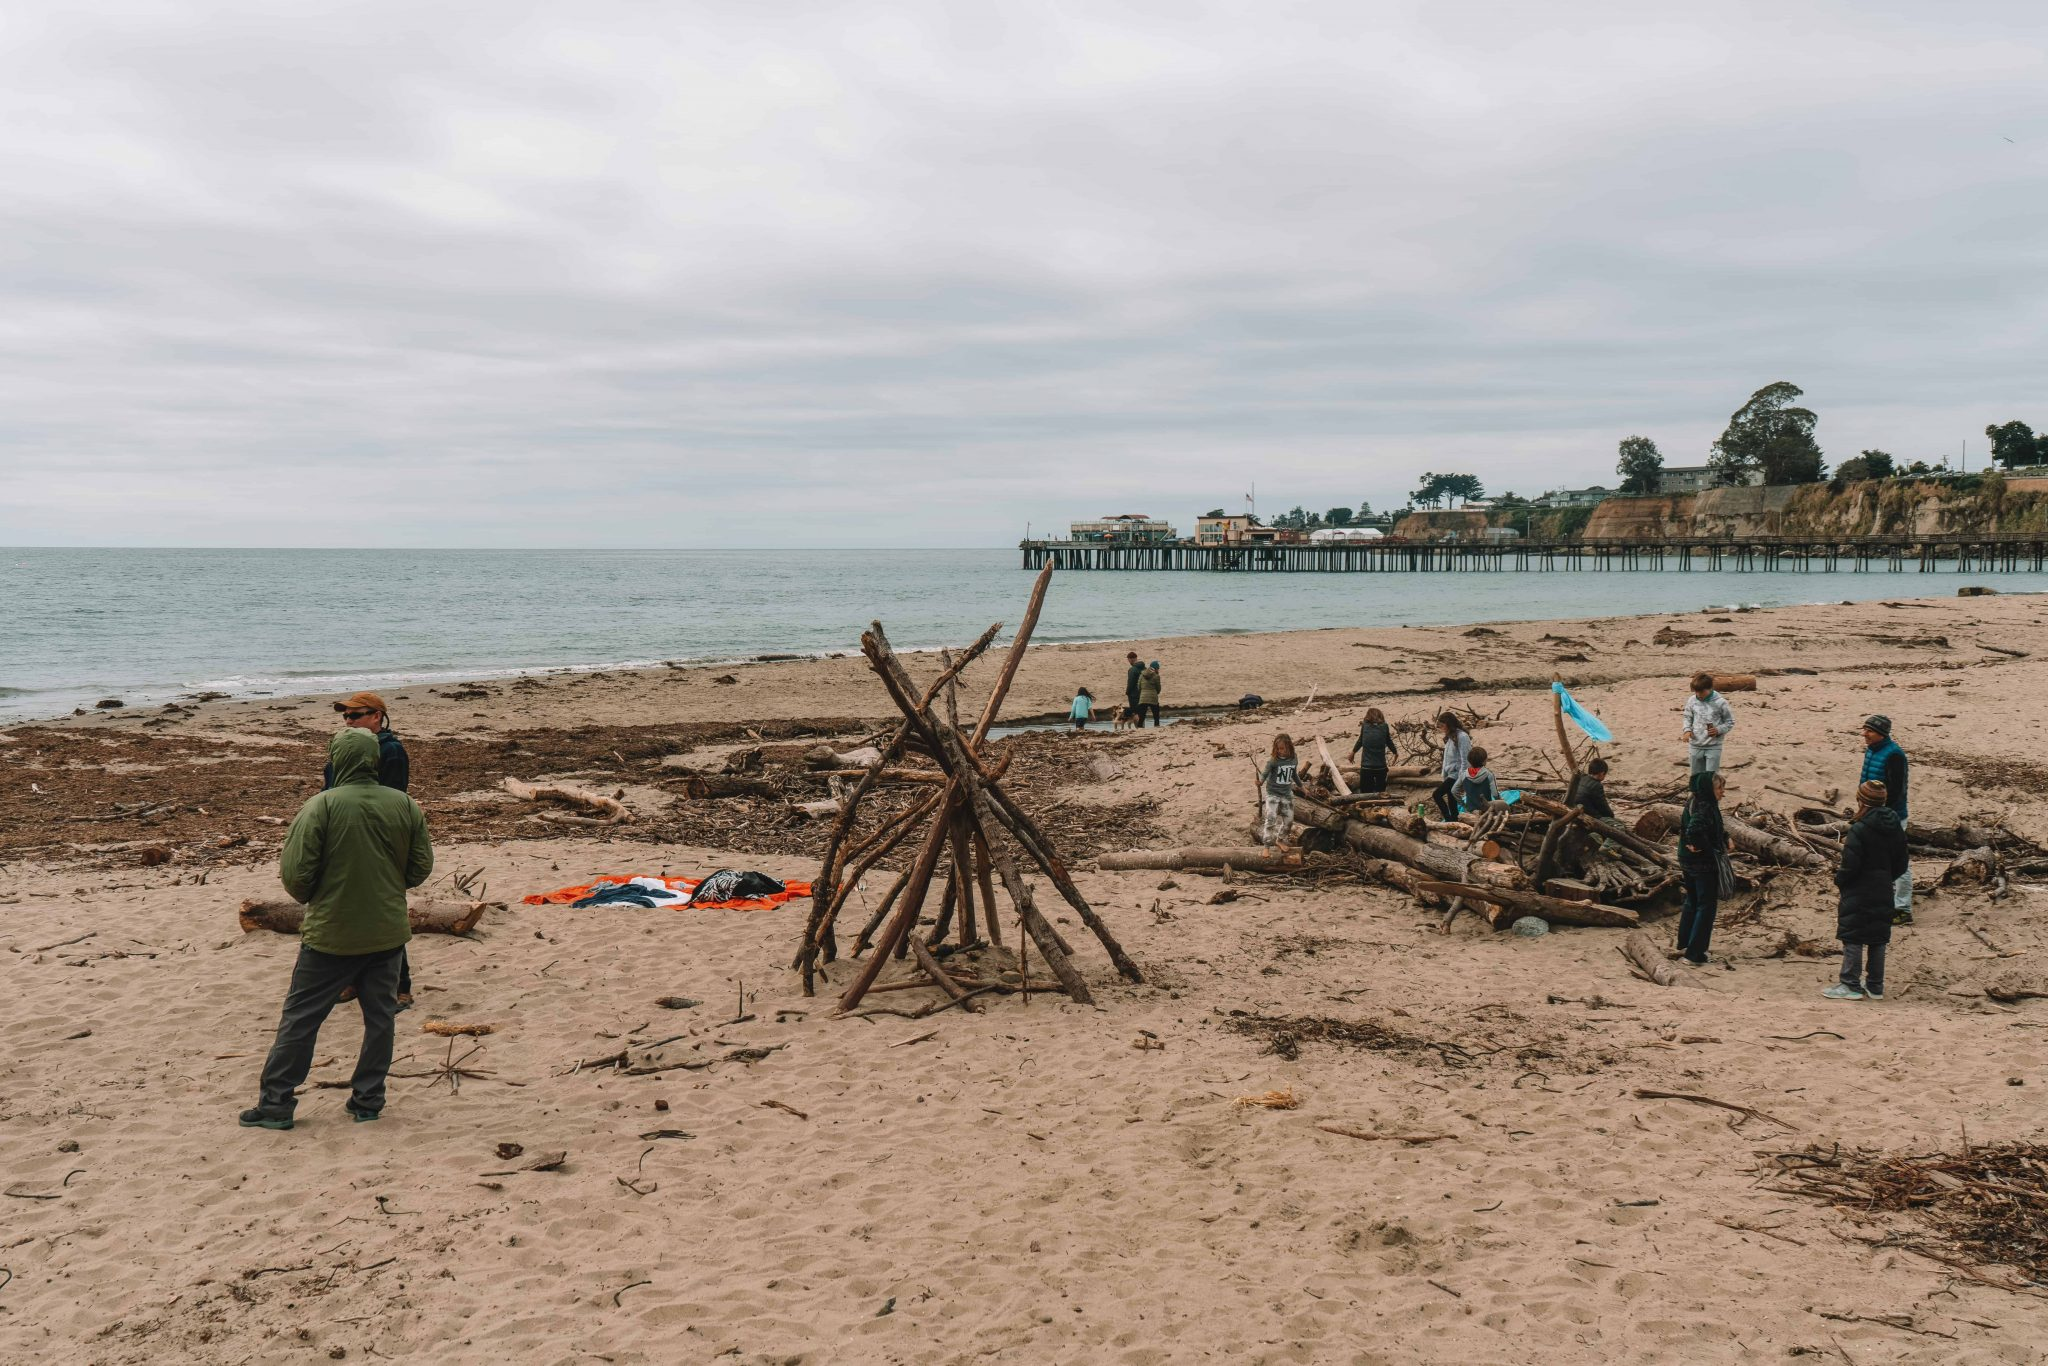 capitola beach - perfect beach for the whole family